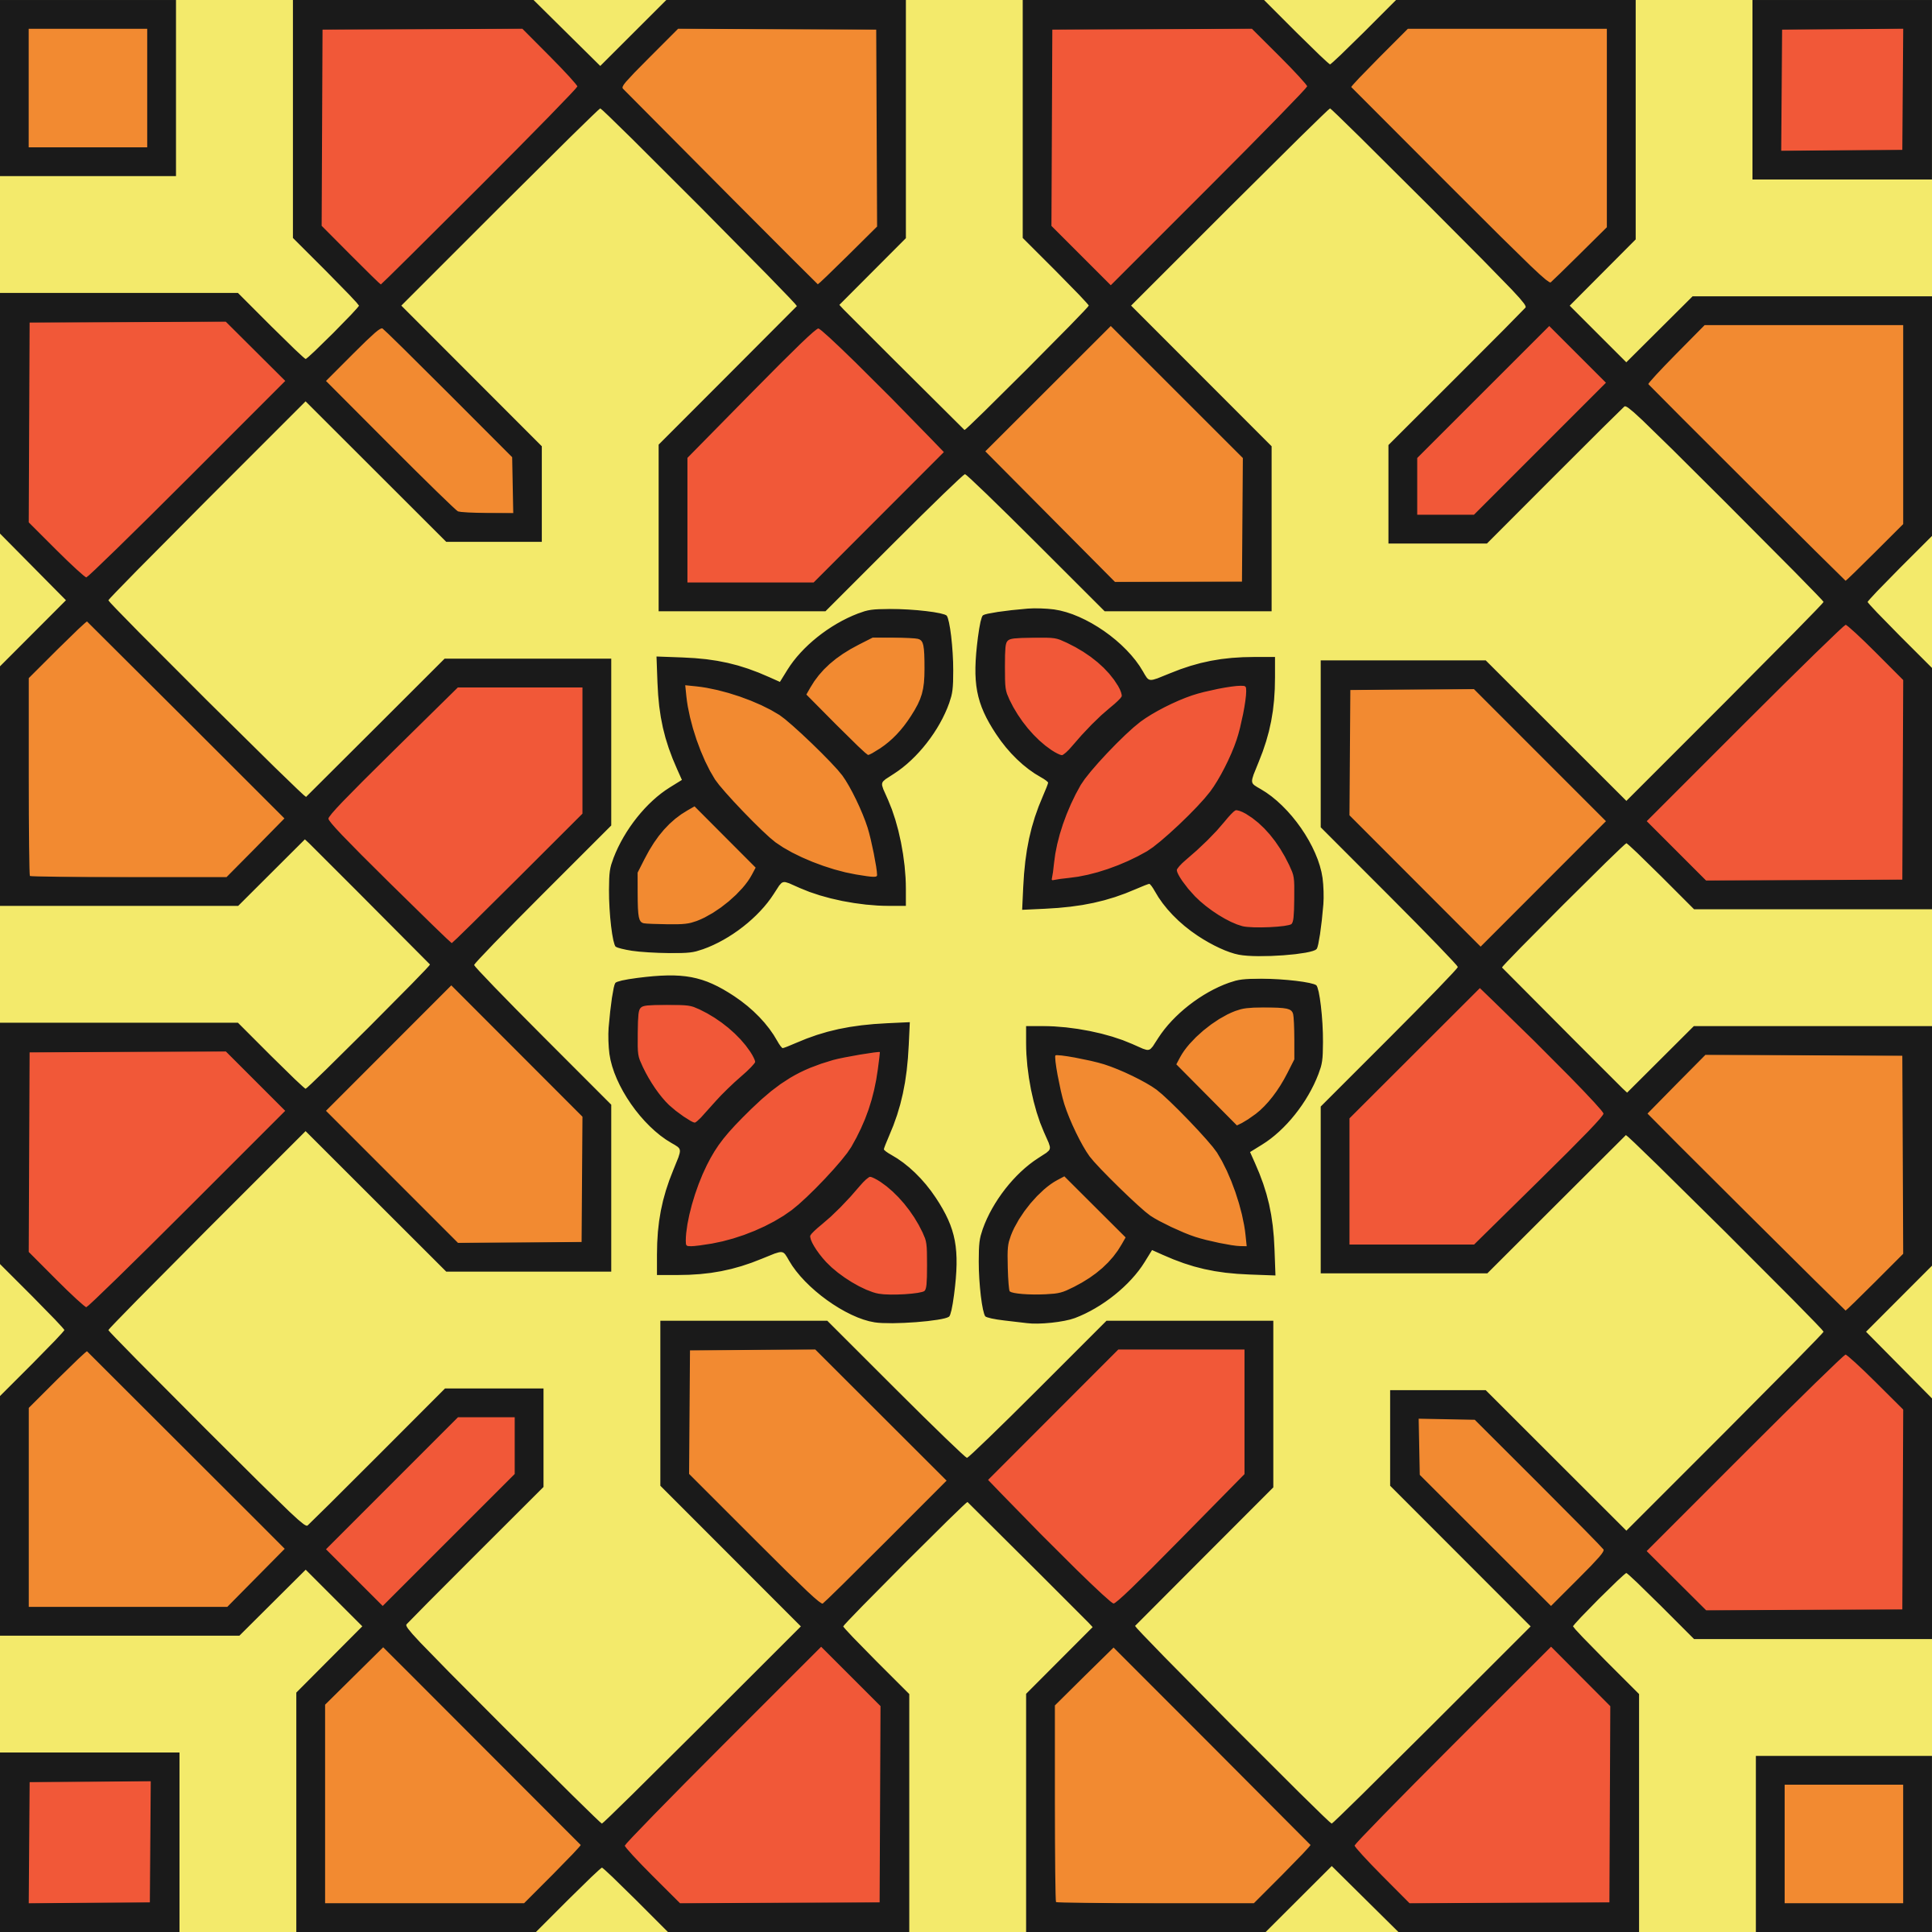 Square ornament 37 (colour) by Firkin